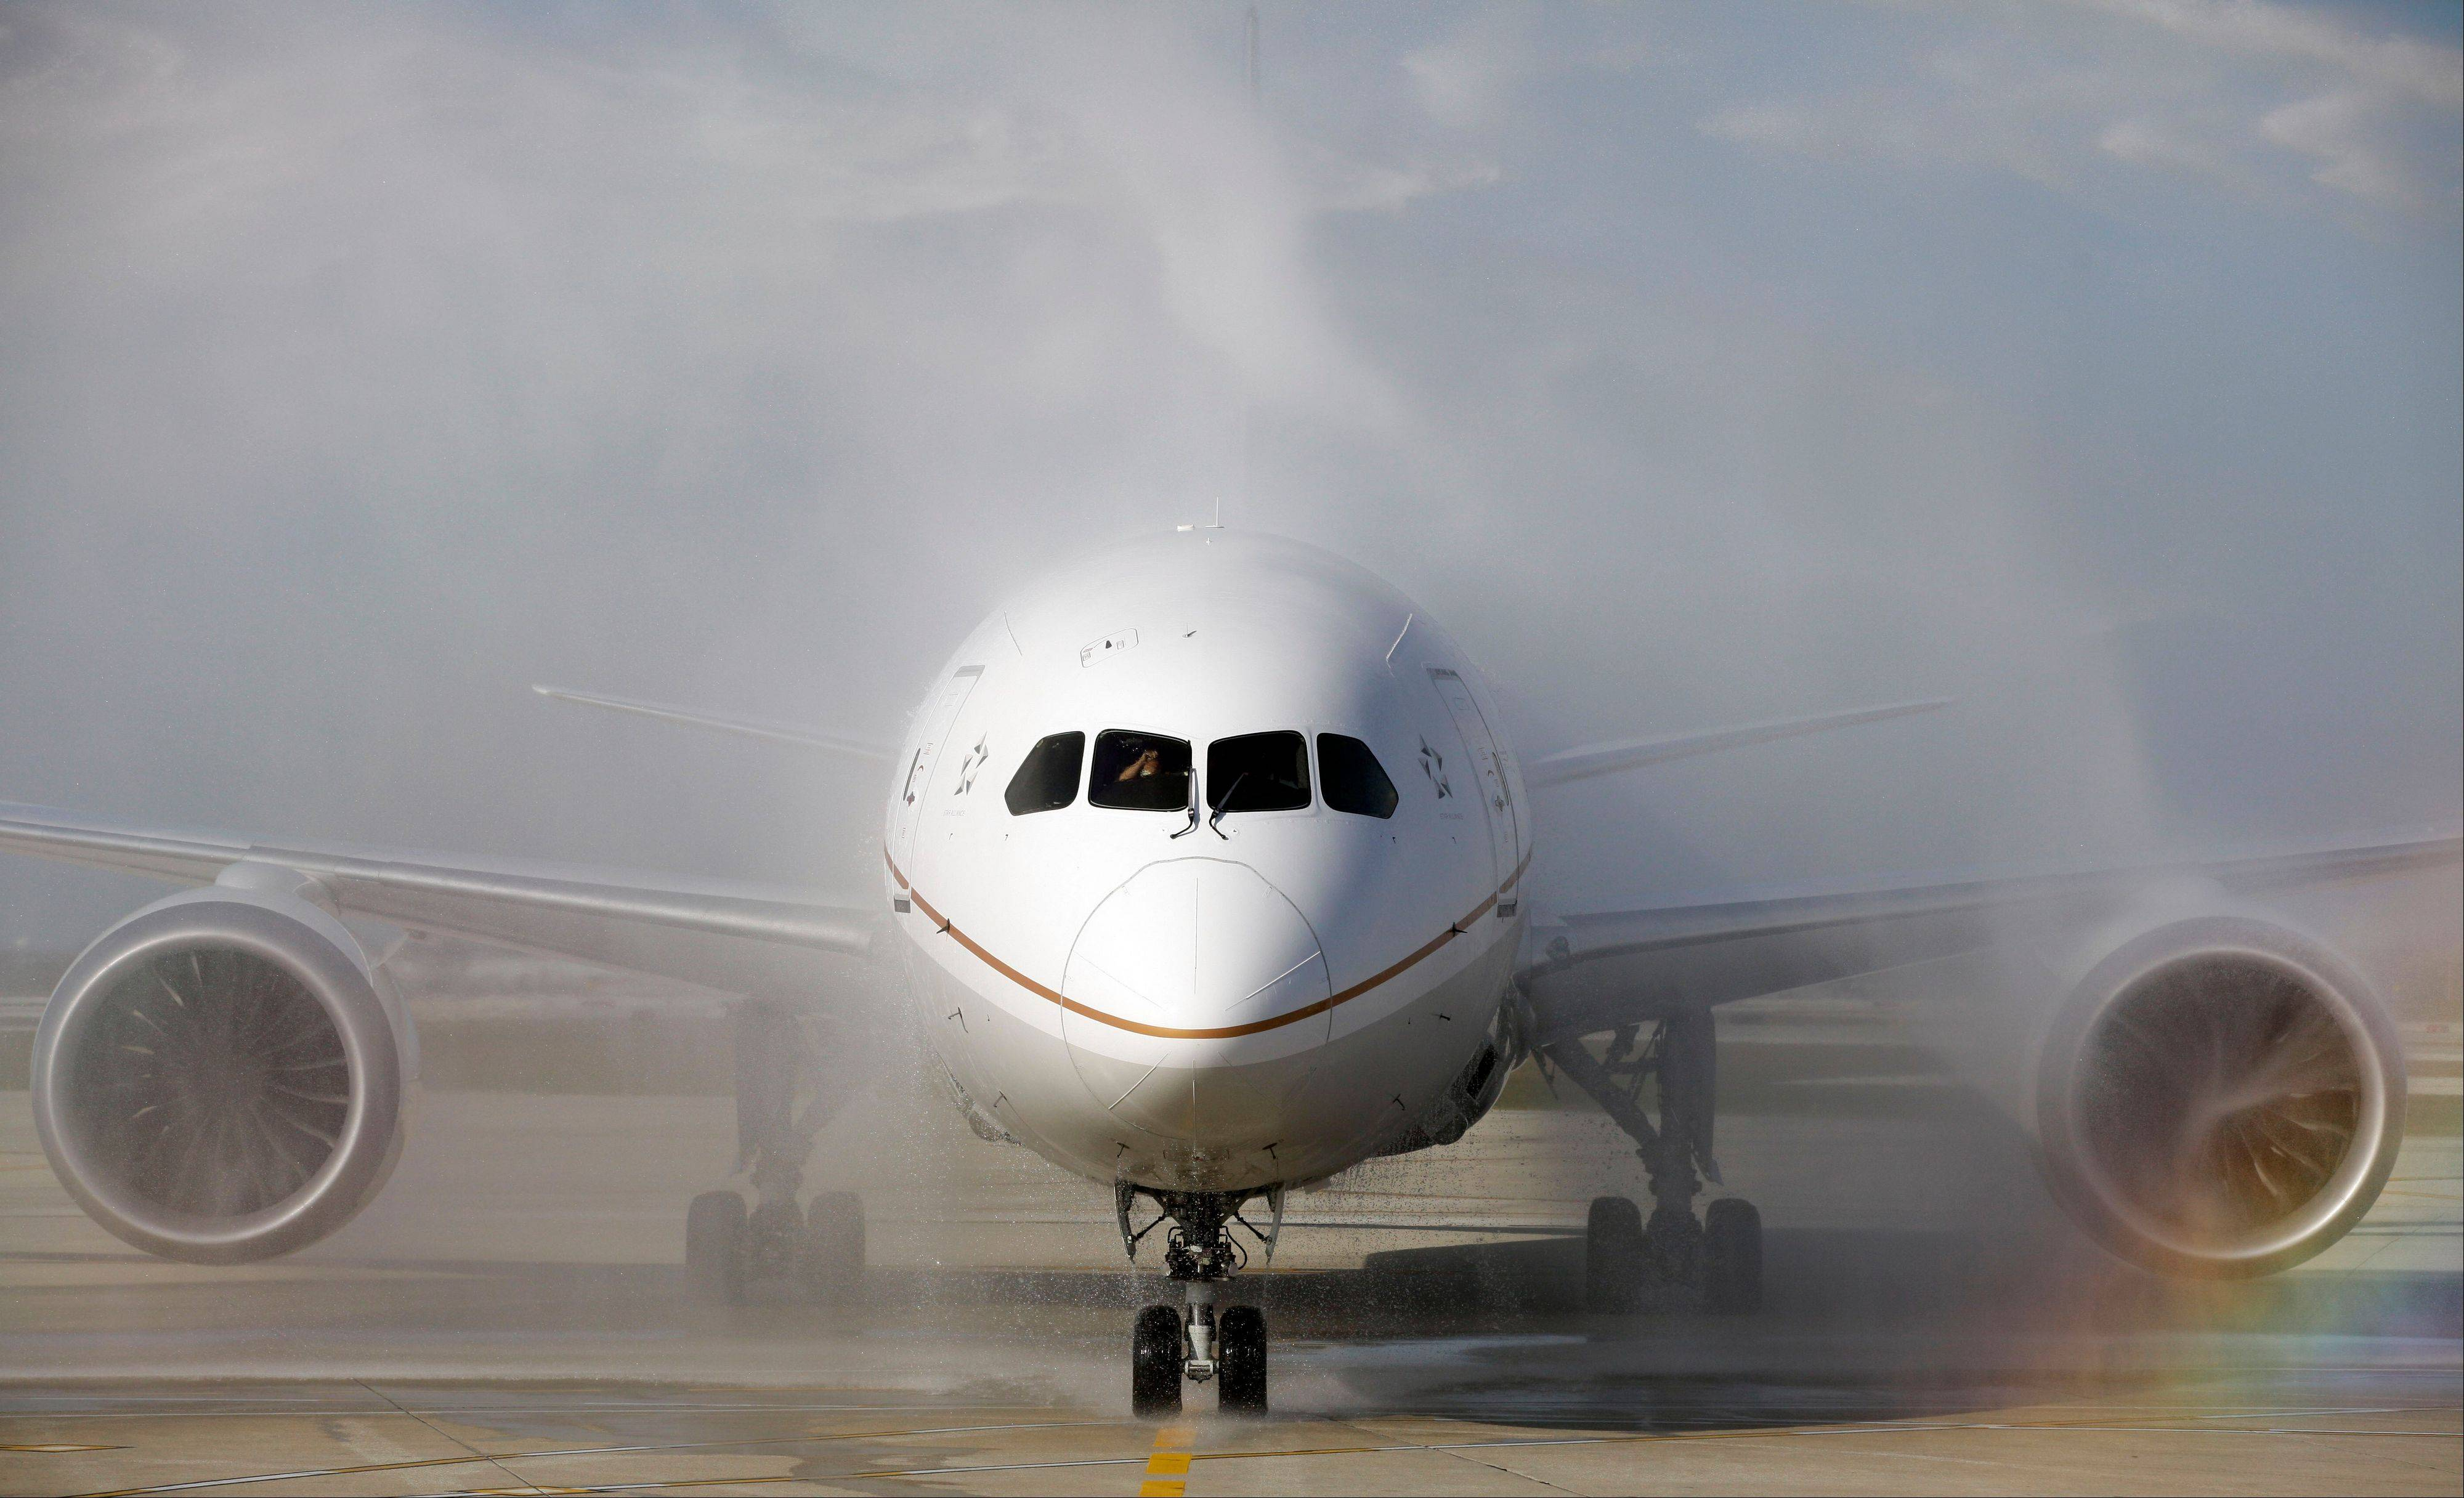 ASSOCIATED PRESS A United Airlines 787 Dreamliner receives a ceremonial wash as it arrives at O�Hare international Airport in Chicago Sunday from Houston after making United�s inaugural 787 revenue flight. The aircraft is touted to be much more fuel efficient than any other similar plane and has a host of passenger amenities, such as larger windows, special lighting and filtered air.